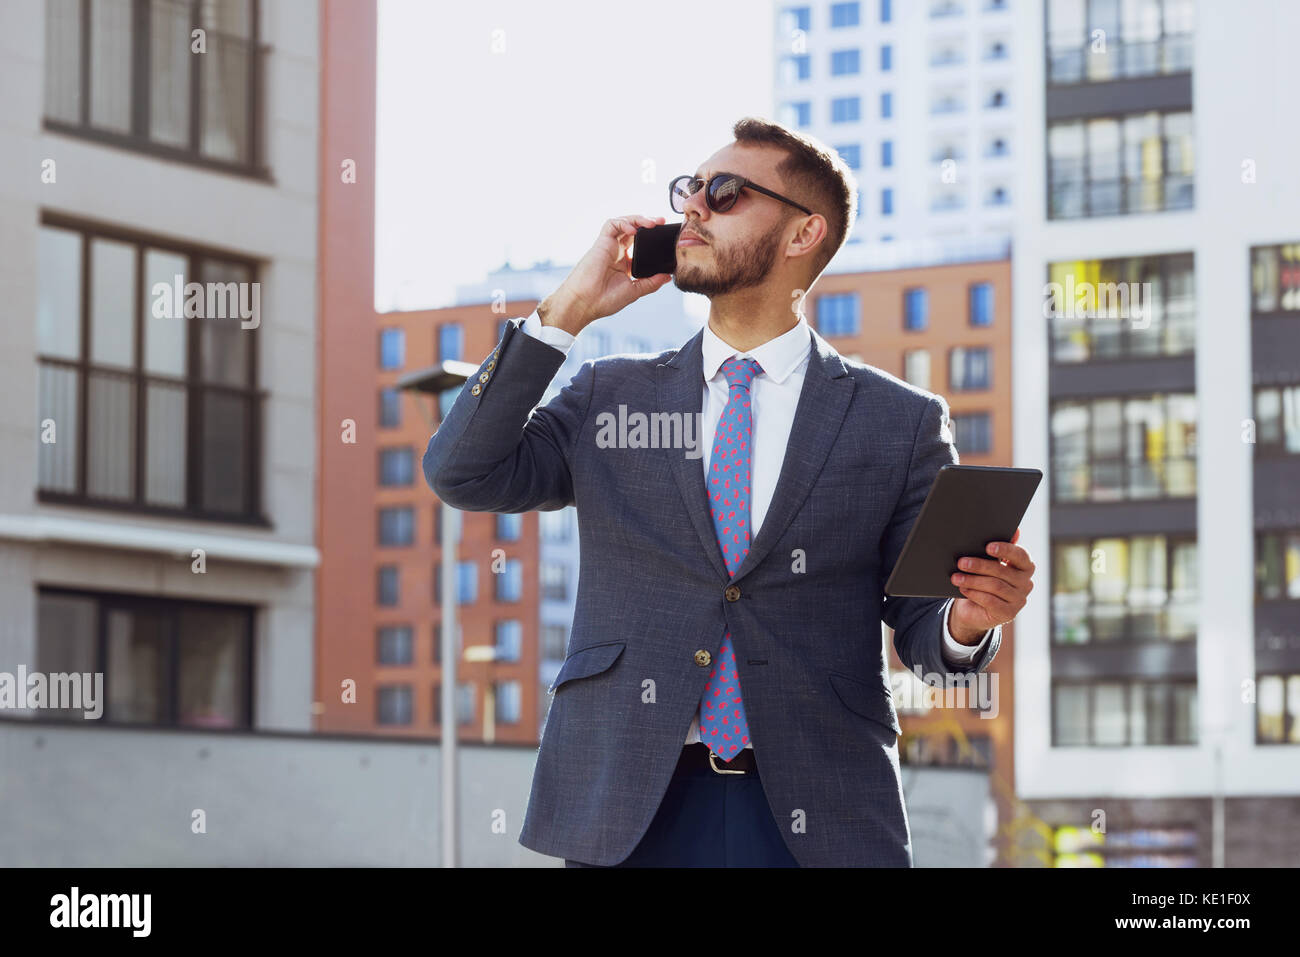 Real estate agent businessman city phone calling - Stock Image